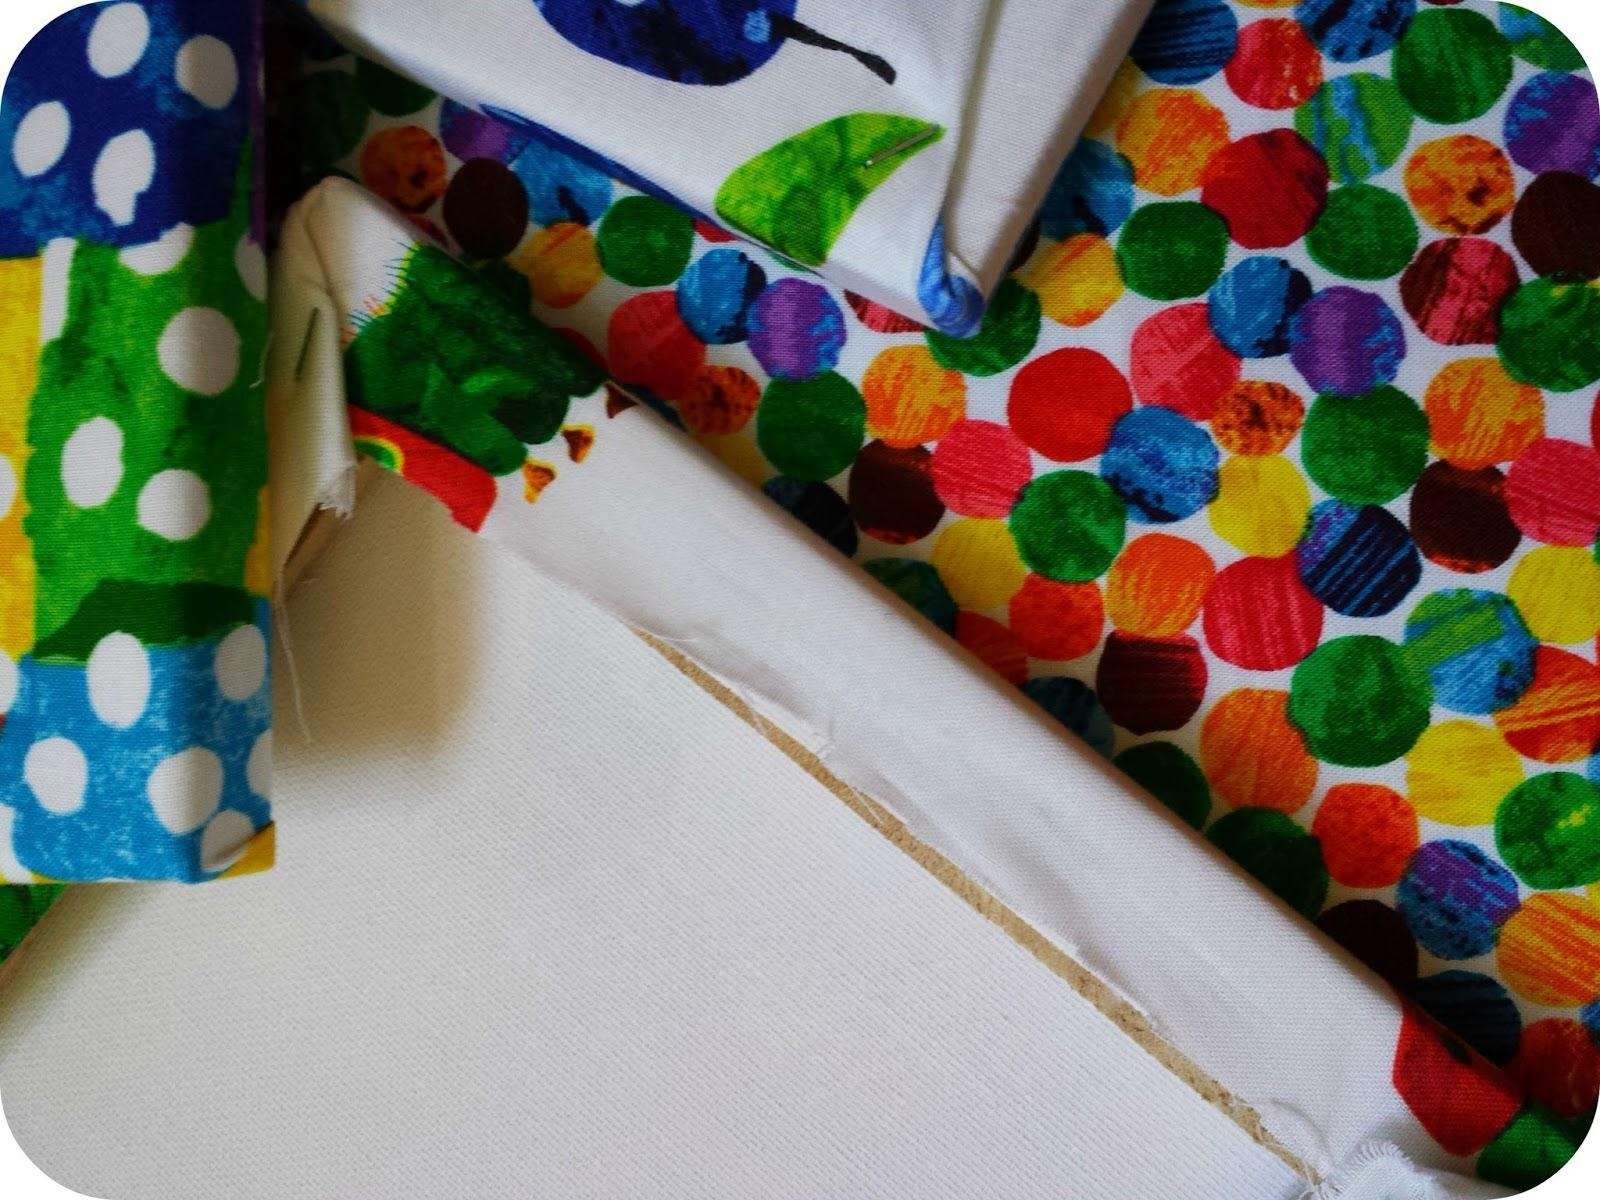 The Adventure Of Parenthood: How To Make Very Hungry Caterpillar For Very Hungry Caterpillar Wall Art (View 19 of 20)